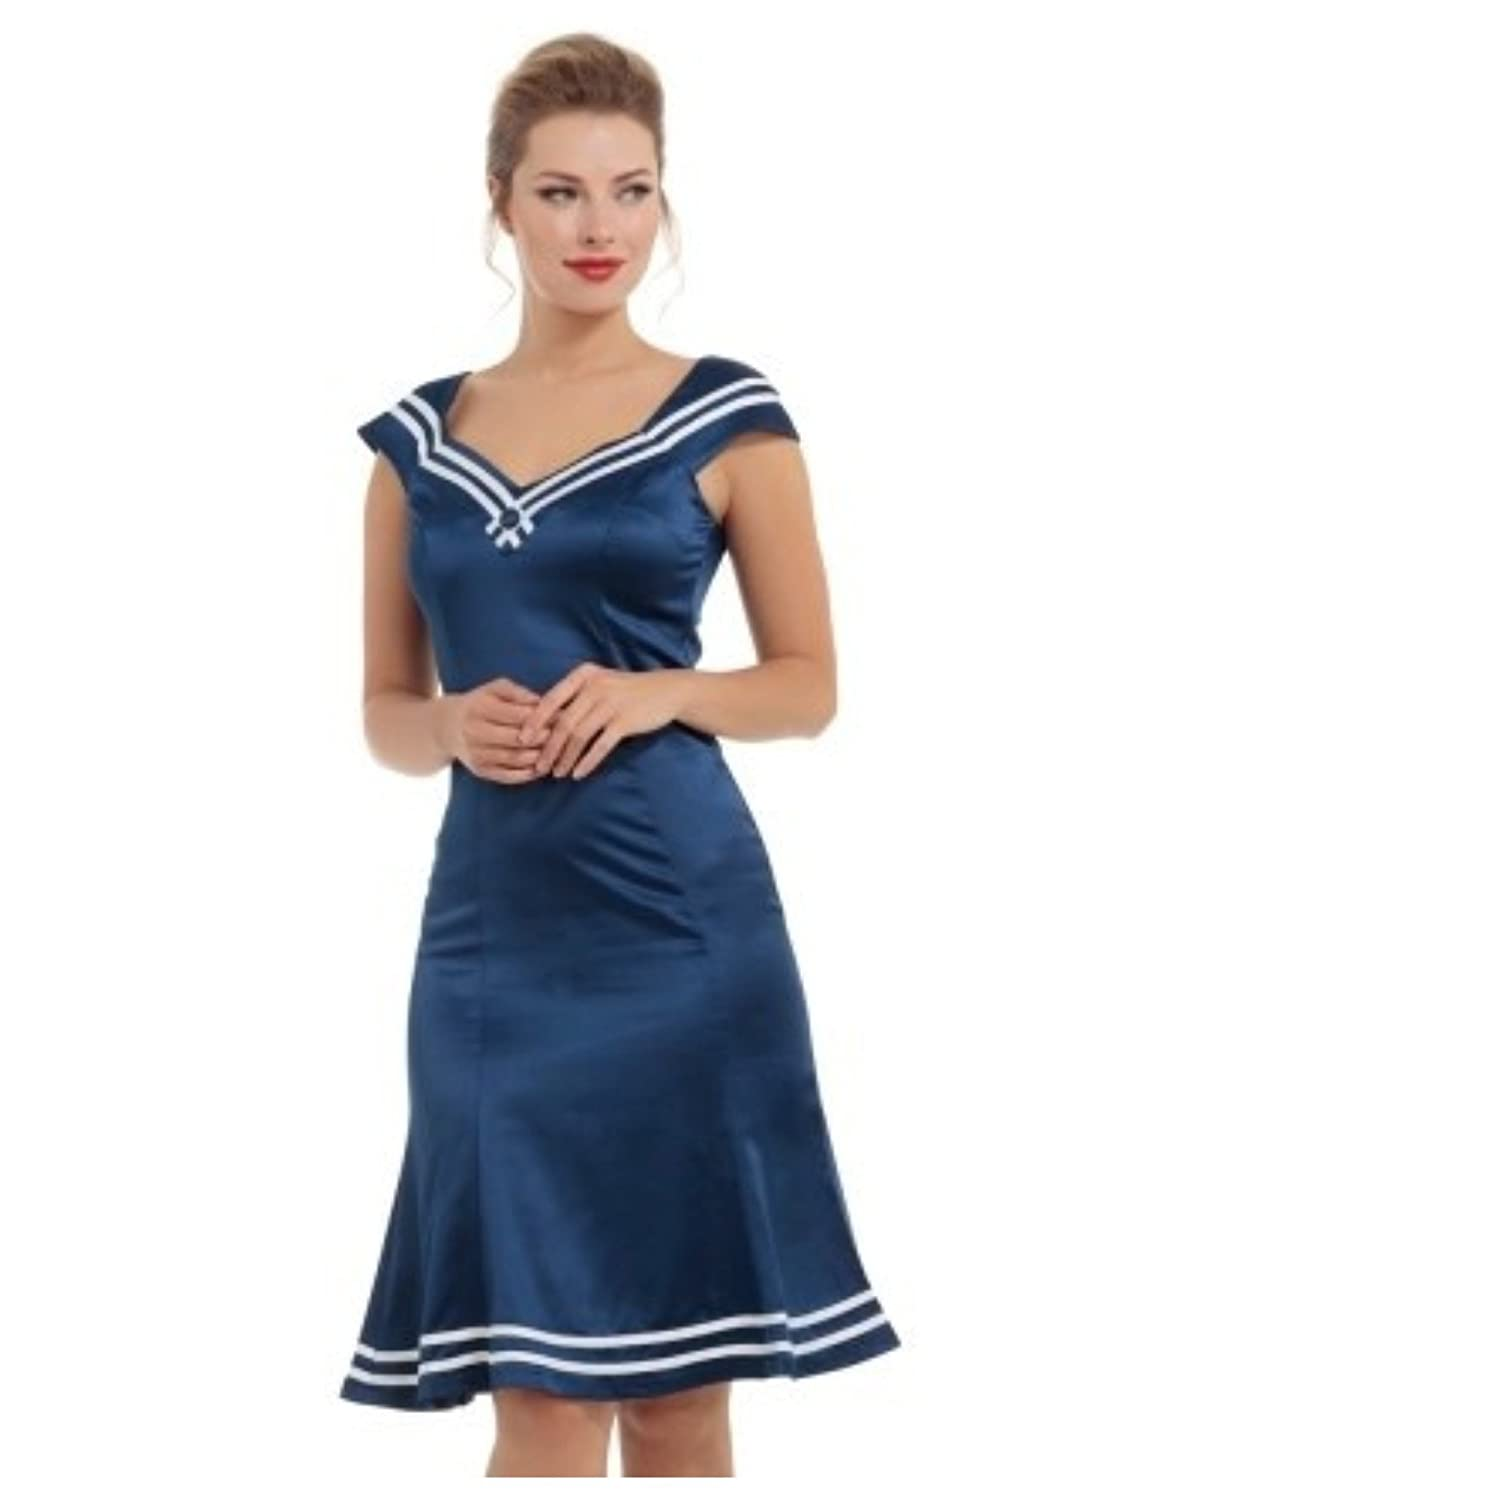 Sailor Dresses, Nautical Theme Dress, WW2 Dresses Voodoo Vixen Isla Silk Like Nautical Dress £32.99 AT vintagedancer.com